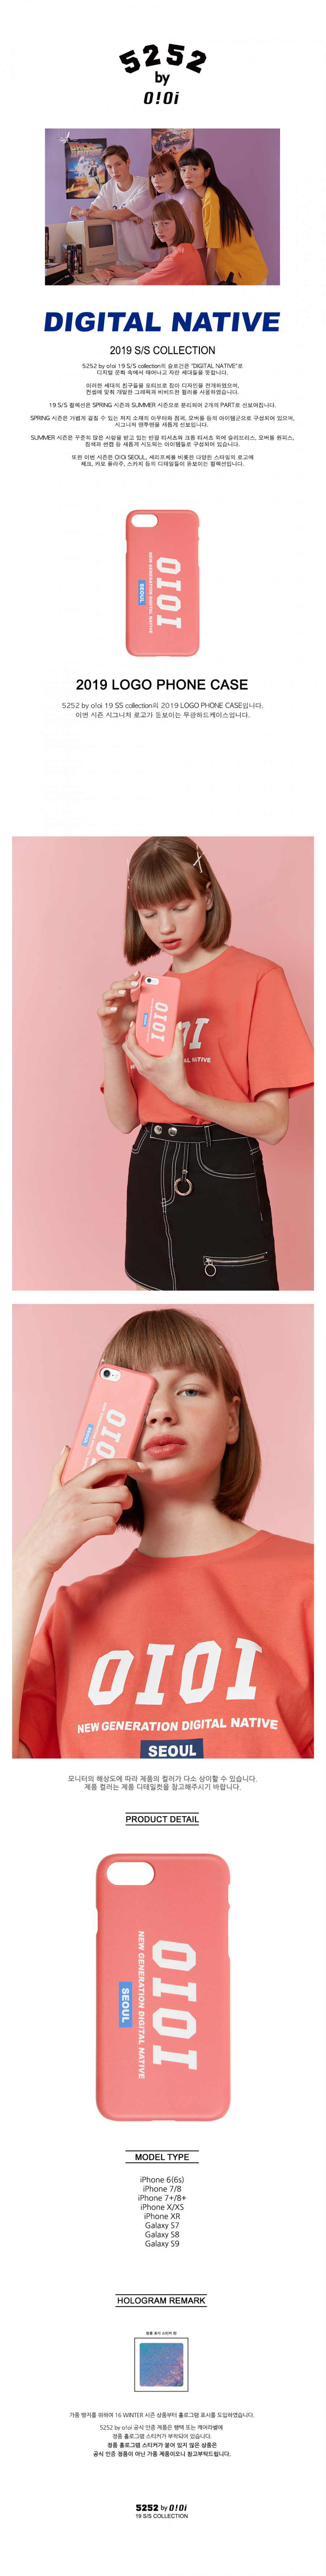 5252 바이 오아이오아이(5252BYOIOI) 2019 LOGO PHONE CASE_living coral